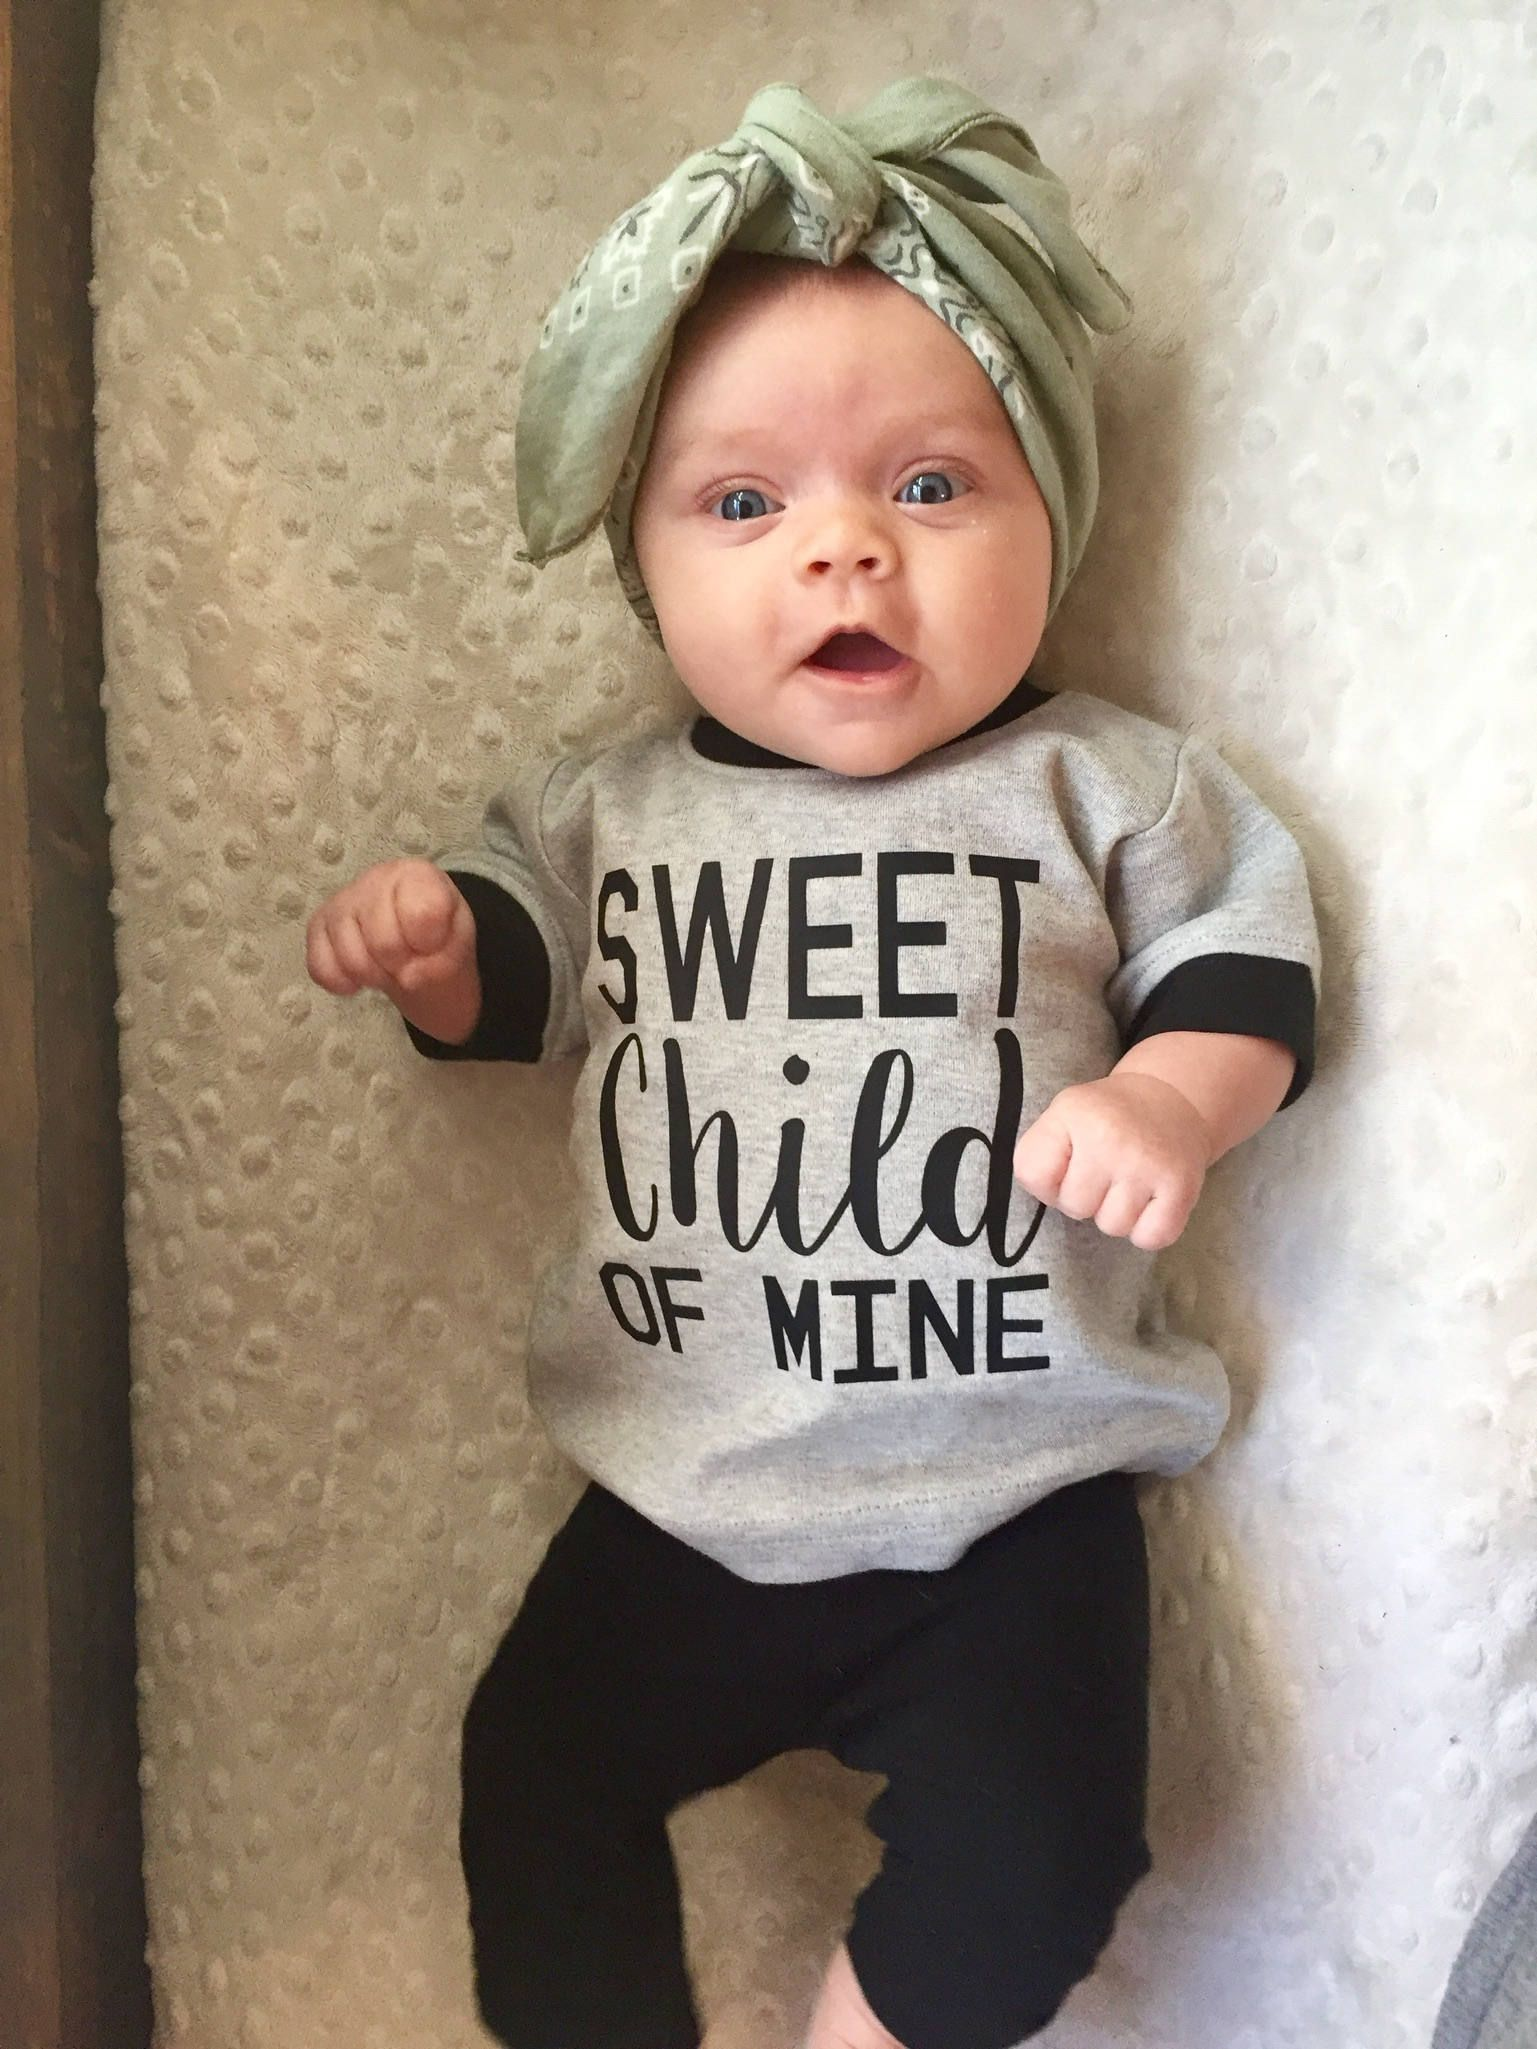 Baby Clothes Sweet Child of Mine Kids Clothes Cute Baby Clothes